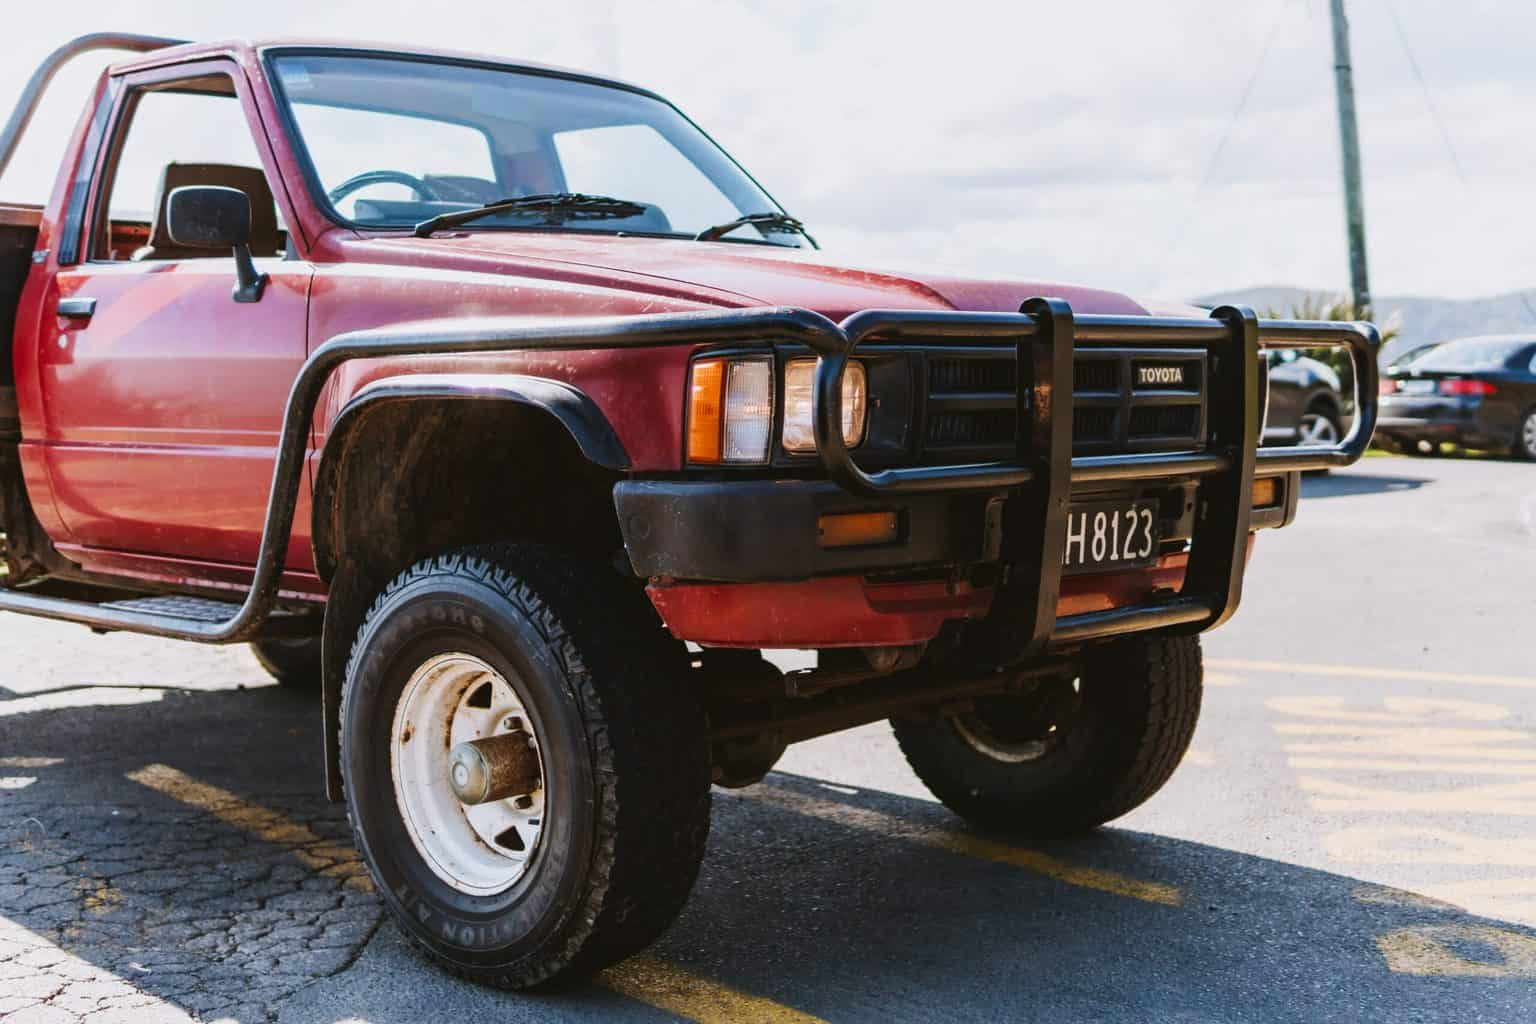 A front view of a red truck with a grille guard